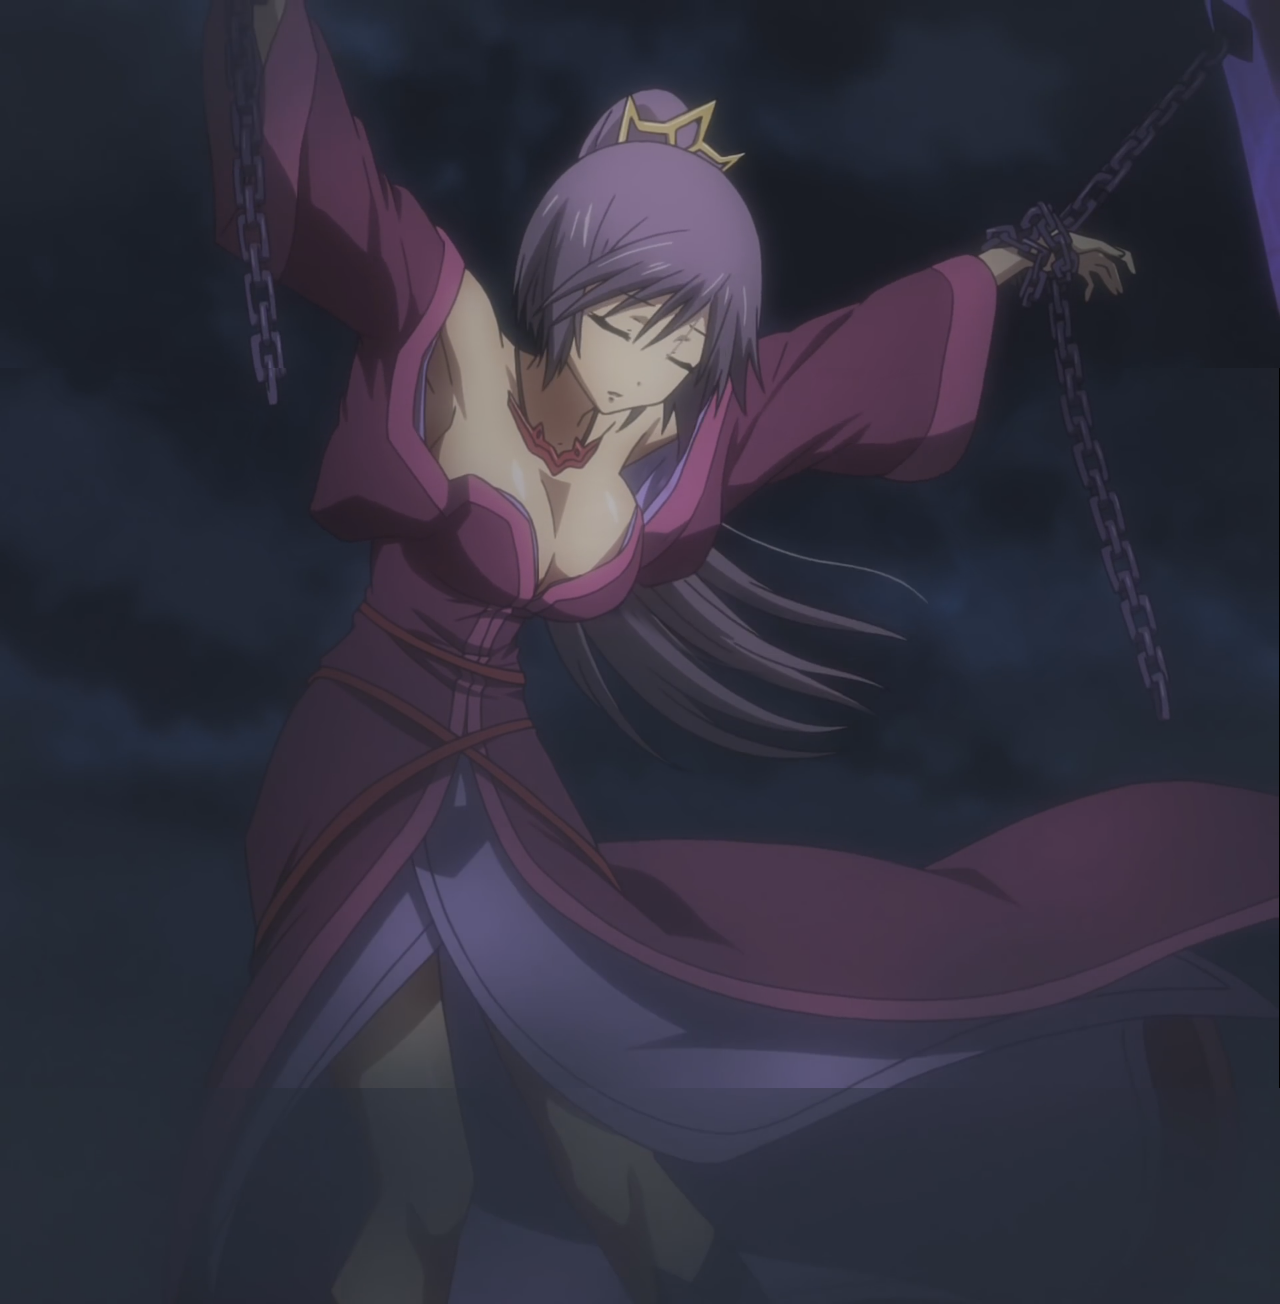 Buxom Purple Haired Maiden from the upcoming Seisen Cerberus Anime 1280x1304